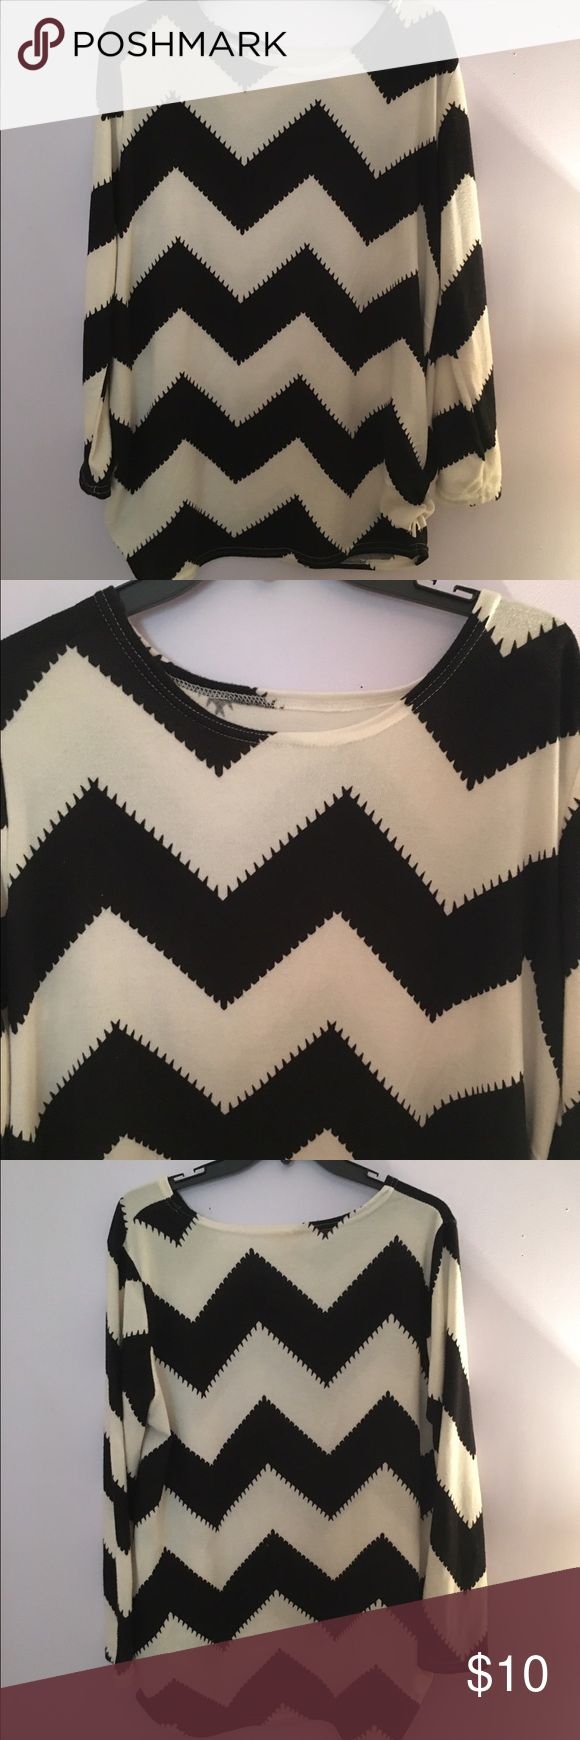 Chevron tunic Fits a variety of sizes but it's juniors large. It's an oversized tunic and it's kind of a sweater material. Tops Tunics